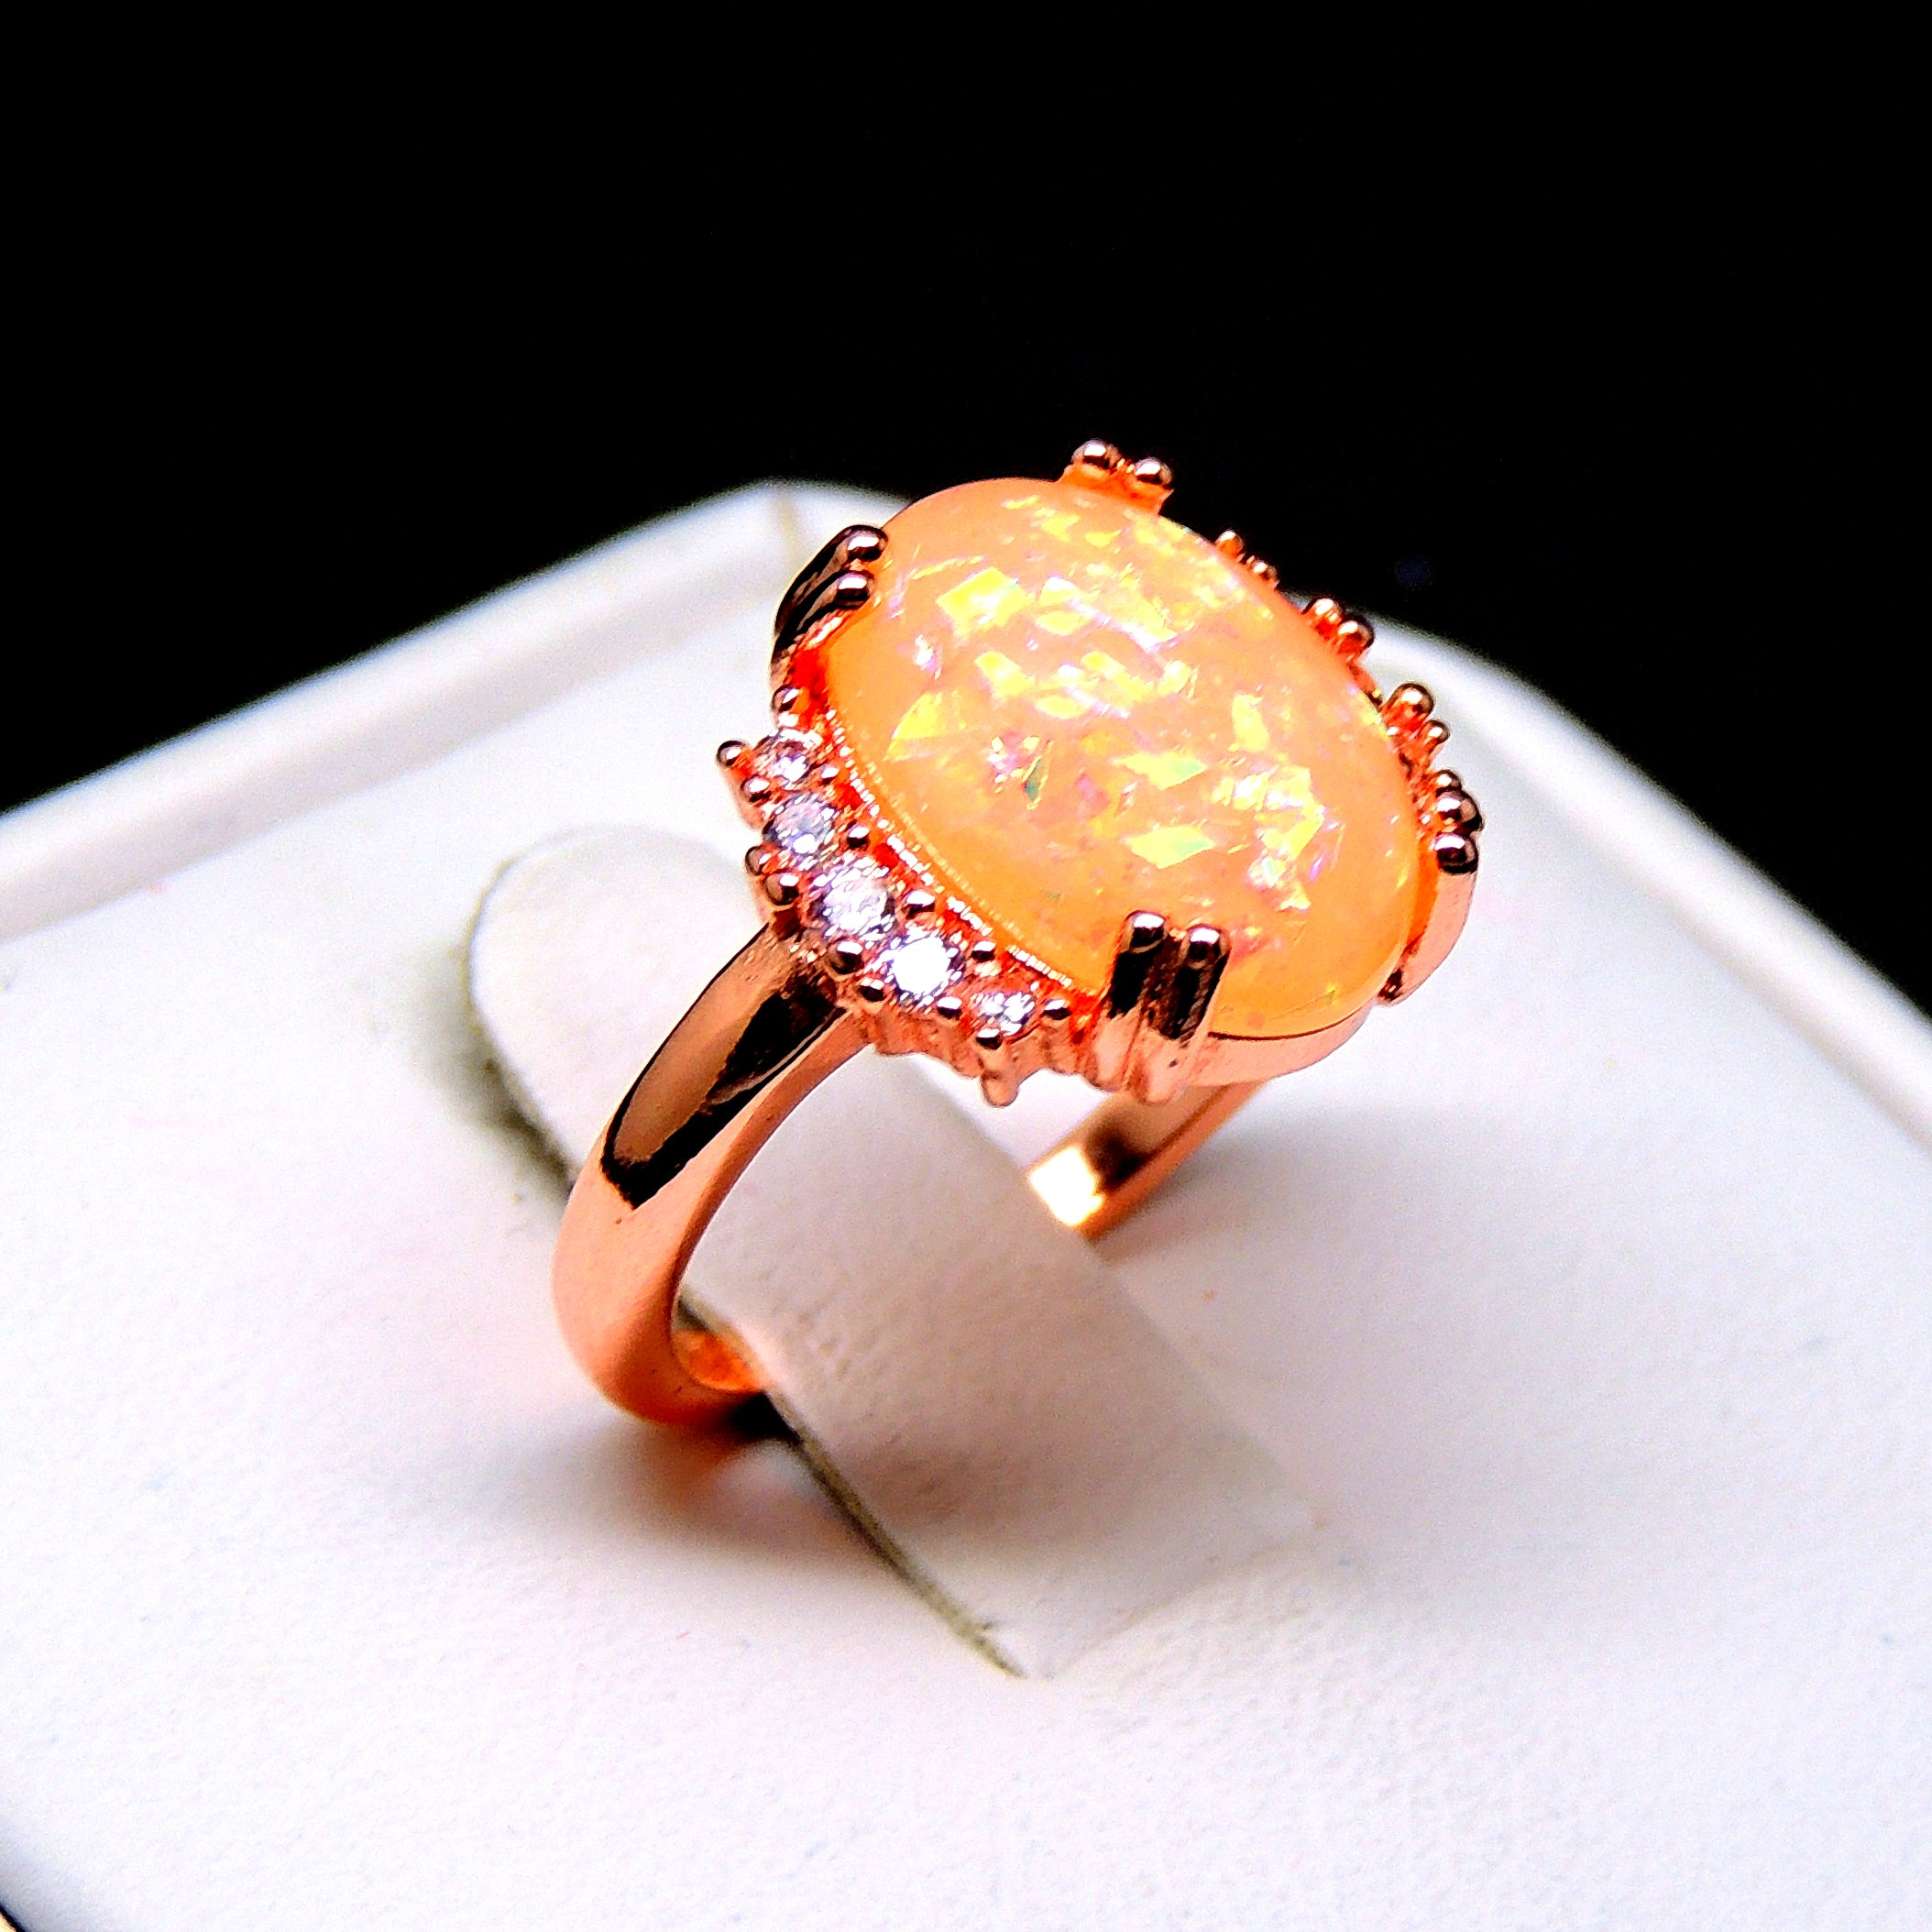 Kennedy Simulated Oval Fire Opal Ring - Ginger Lyne Collection